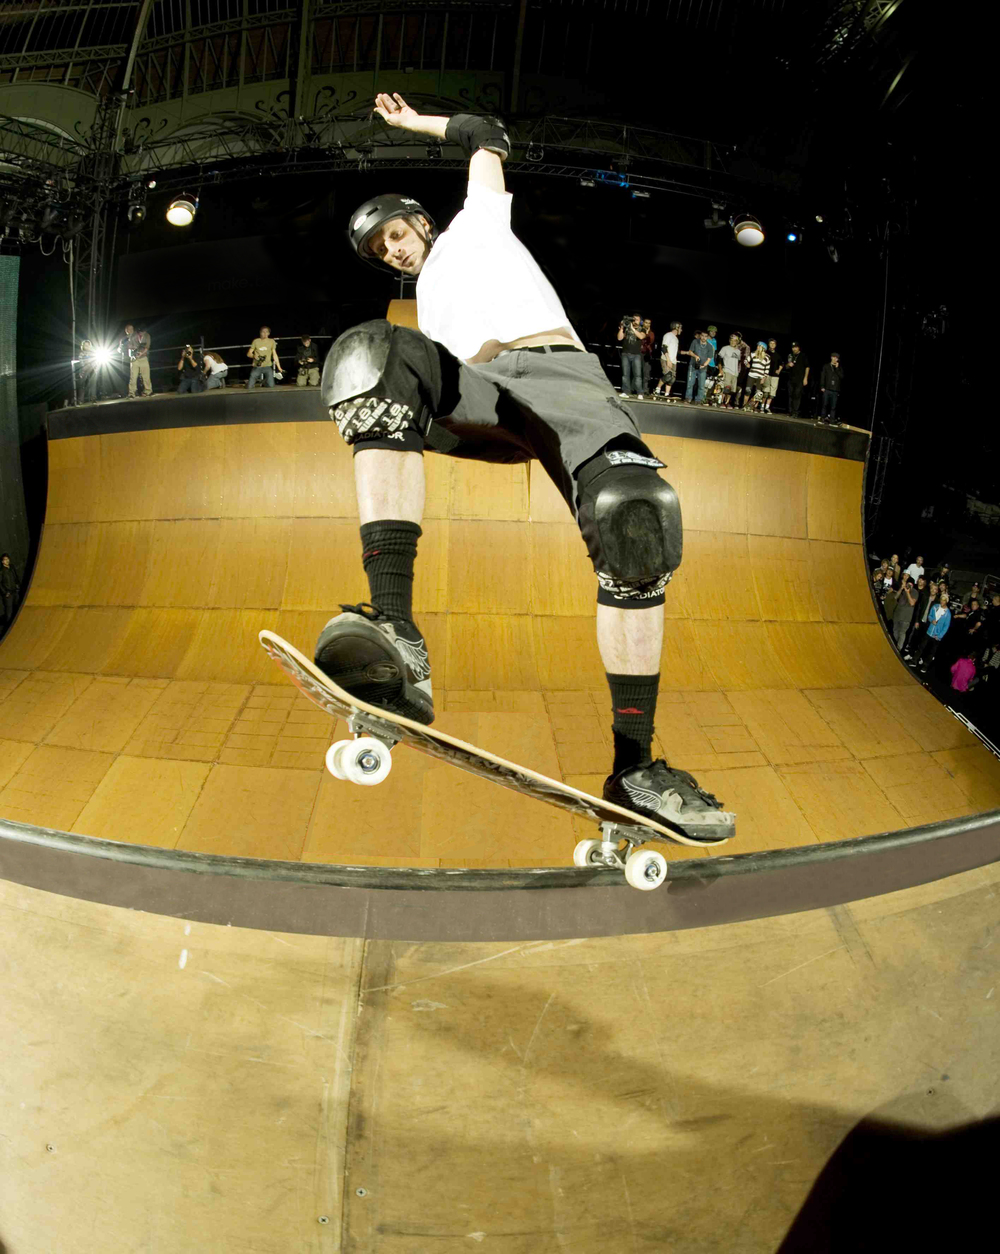 tony hawk -fakie 5.0-paris.jpg